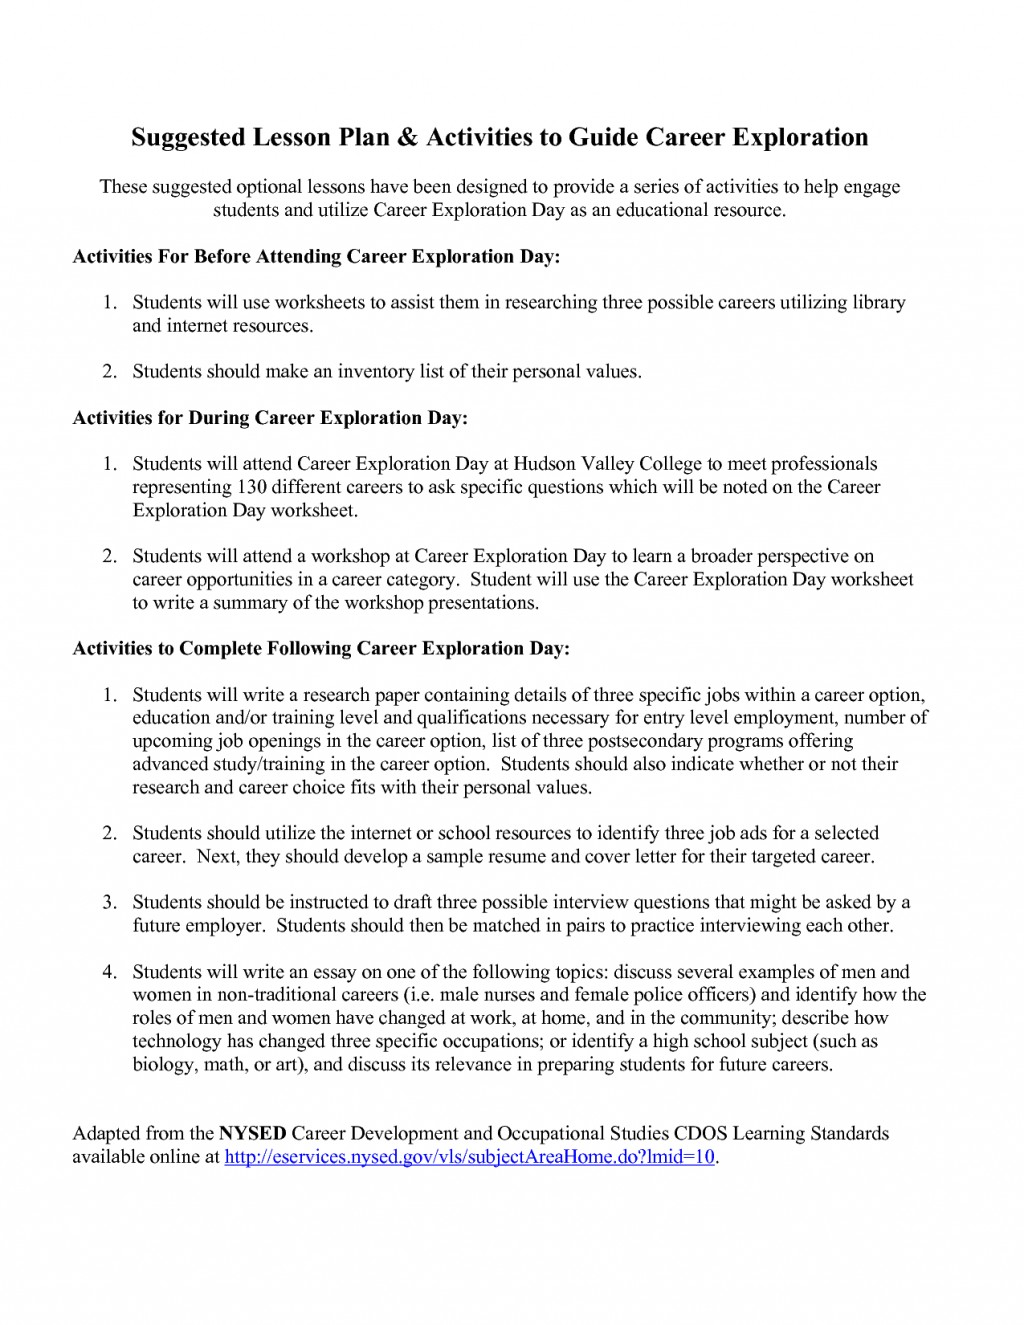 020 Research Paper Career Exploration Example Worksheets 100489 Unique Large